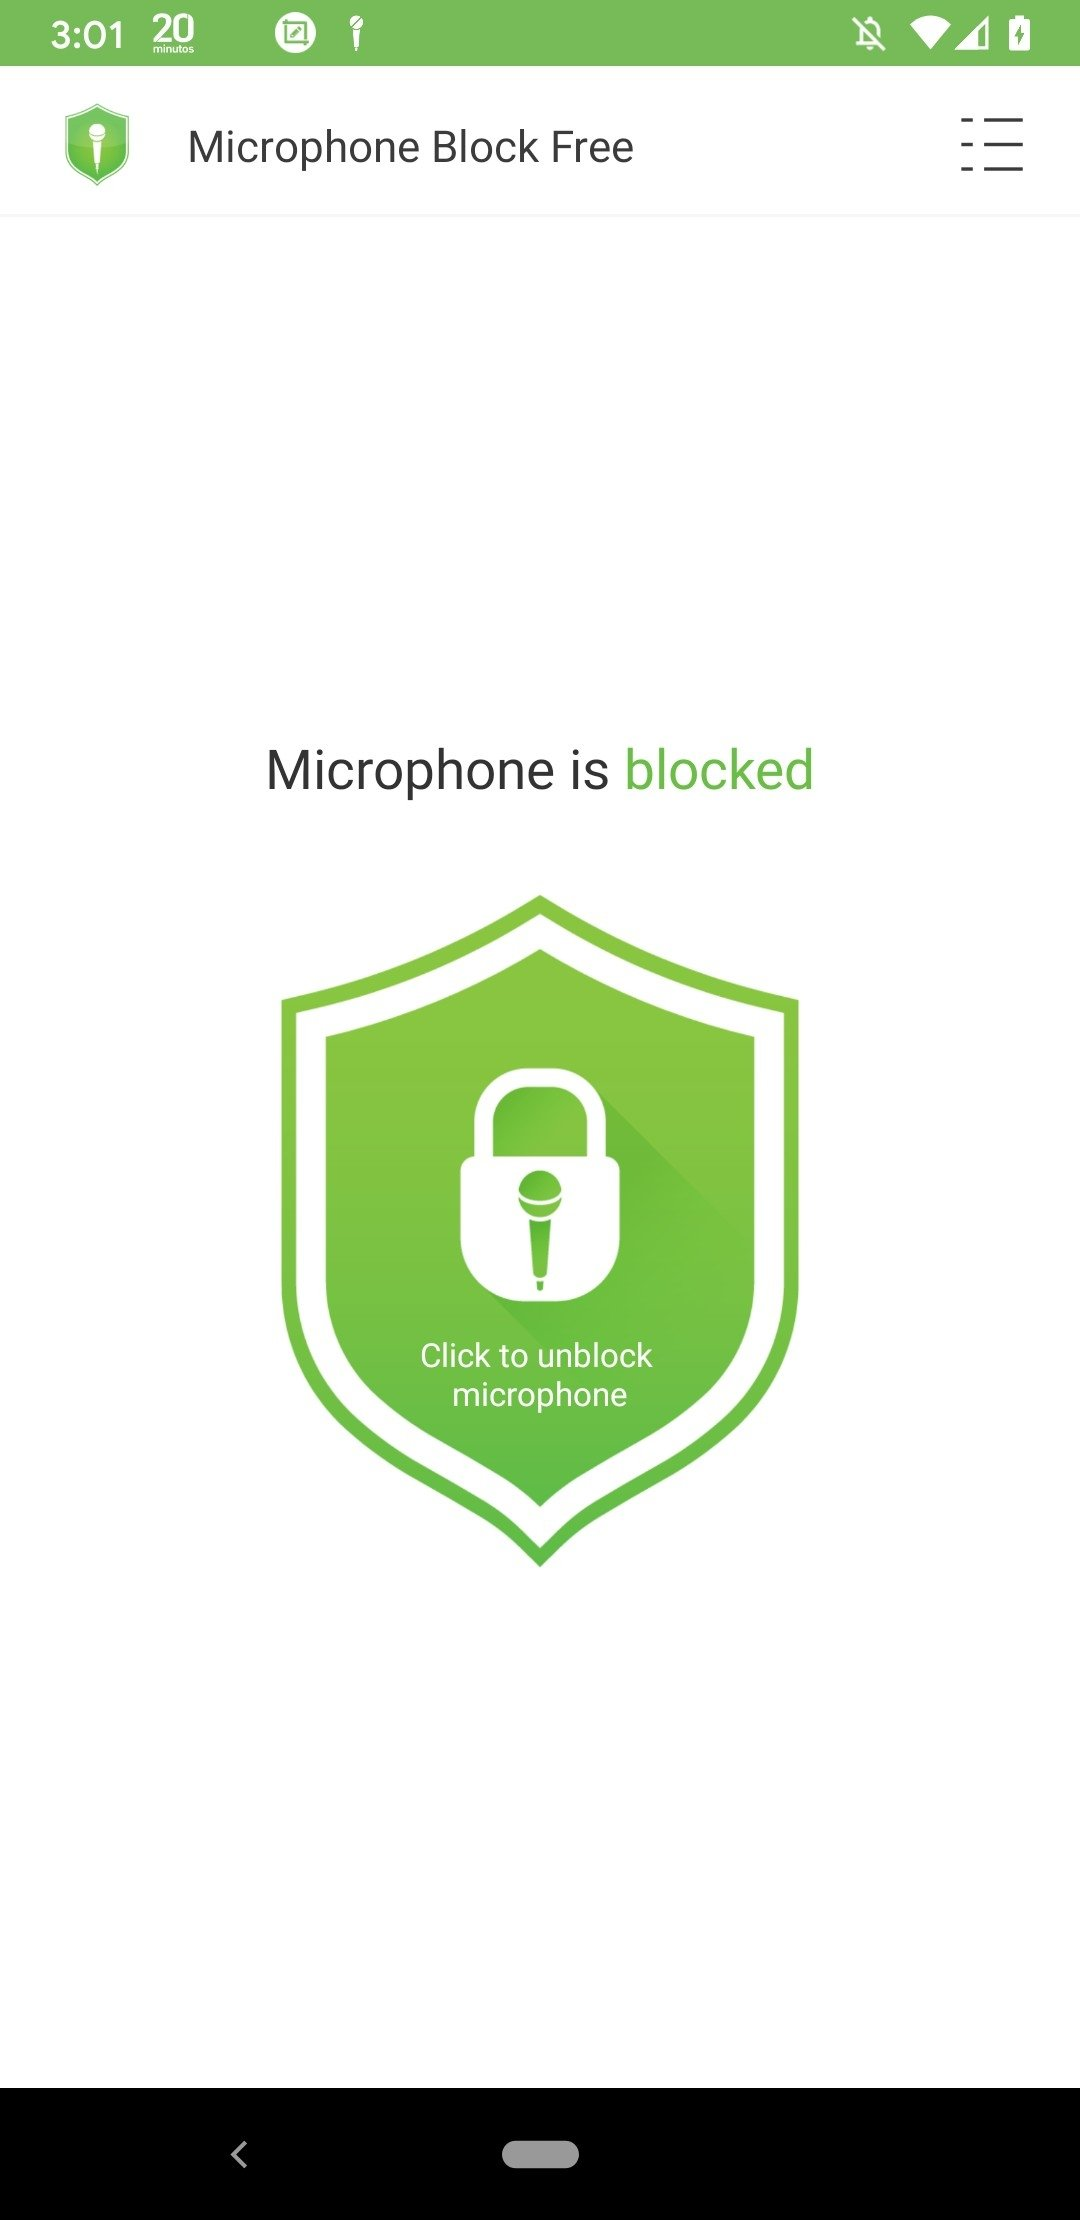 Mic Block Android image 3